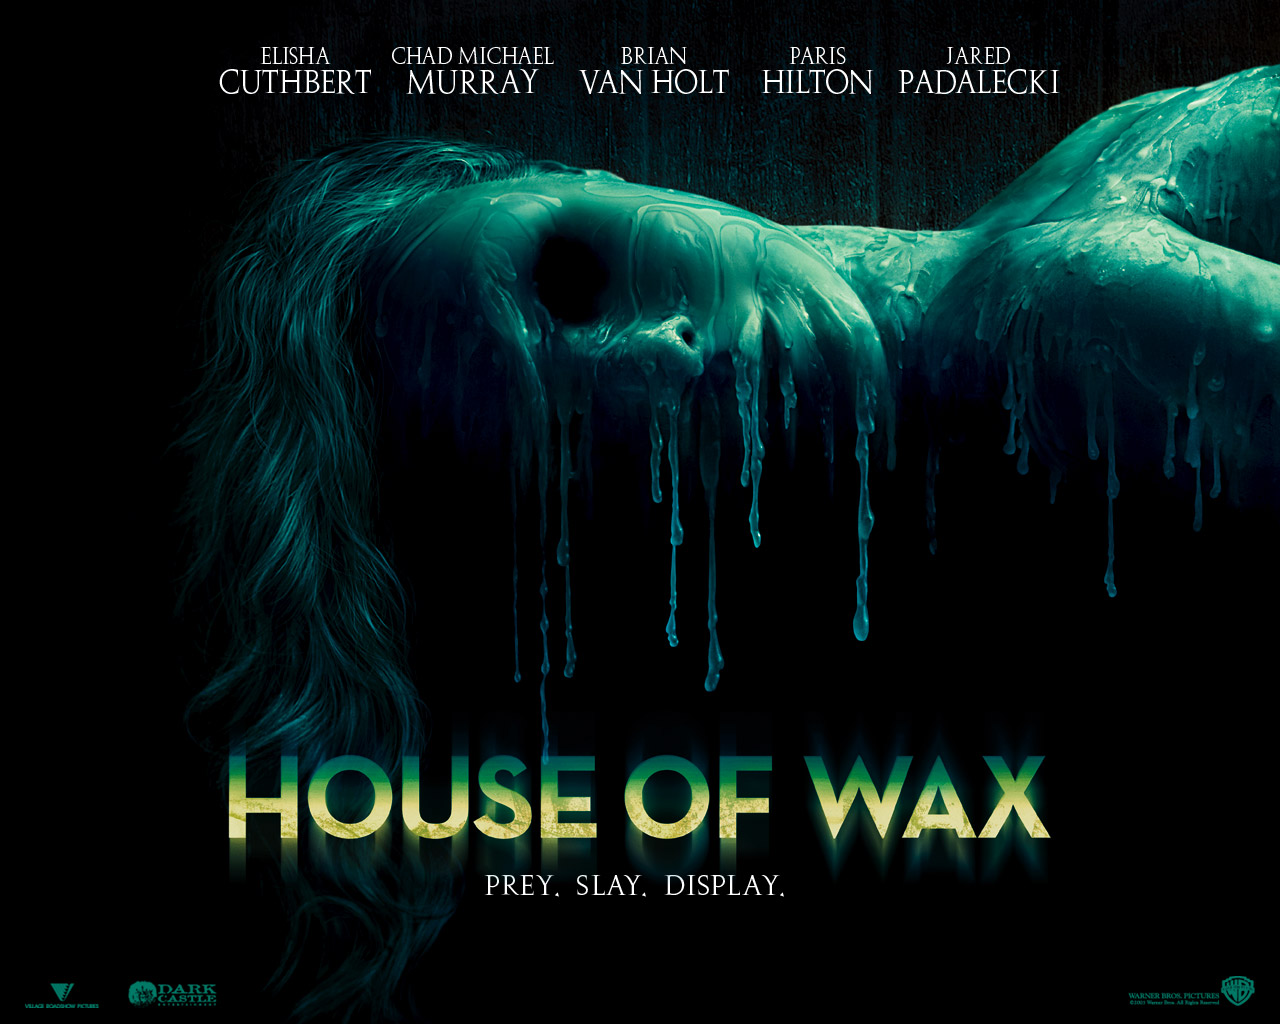 http://4.bp.blogspot.com/_qTOEtXYvAtE/TChWHGZpkCI/AAAAAAAAAEc/x-jHbmwNkps/s1600/House_of_Wax_Wallpaper_3_1280.jpg